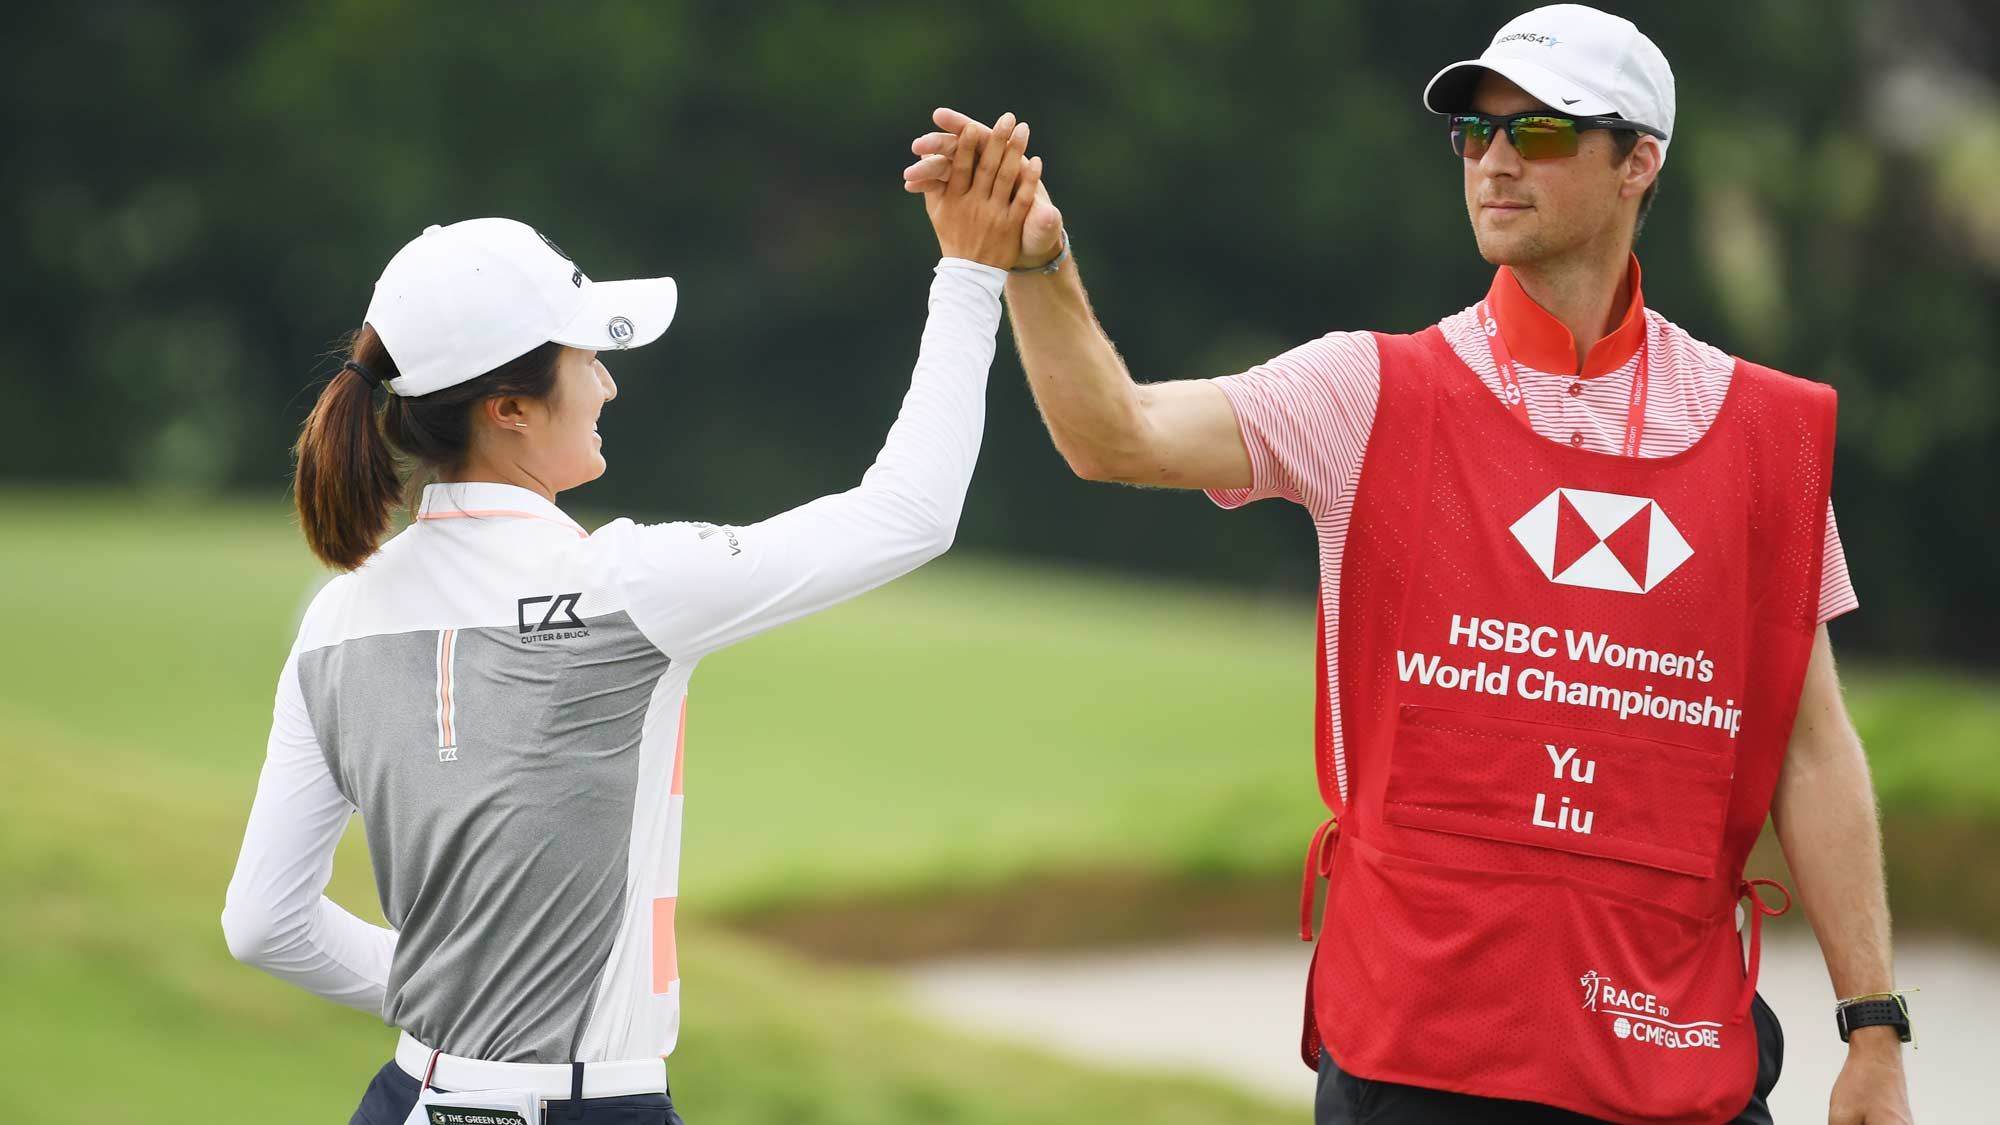 Yu Liu of China celebrates with her caddie on the 18th hole during the first round of the HSBC Women's World Championship at Sentosa Golf Club on February 28, 2019 in Singapore.